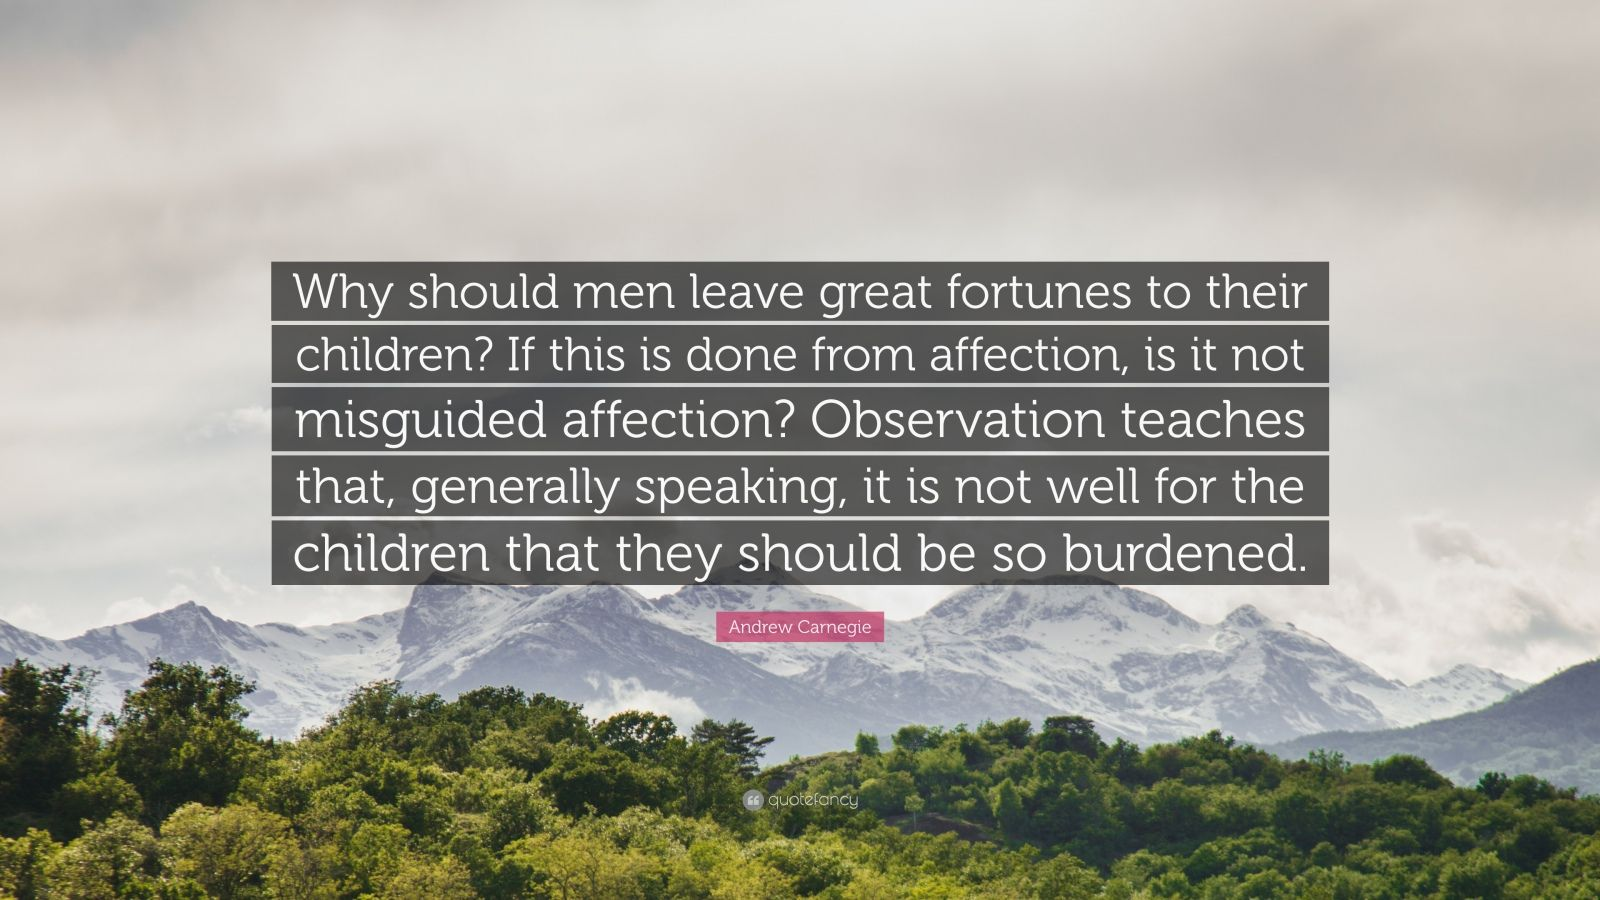 "Andrew Carnegie Quote: ""Why should men leave great fortunes to their children? If this is done from affection, is it not misguided affection? Observation teaches that, generally speaking, it is not well for the children that they should be so burdened."""